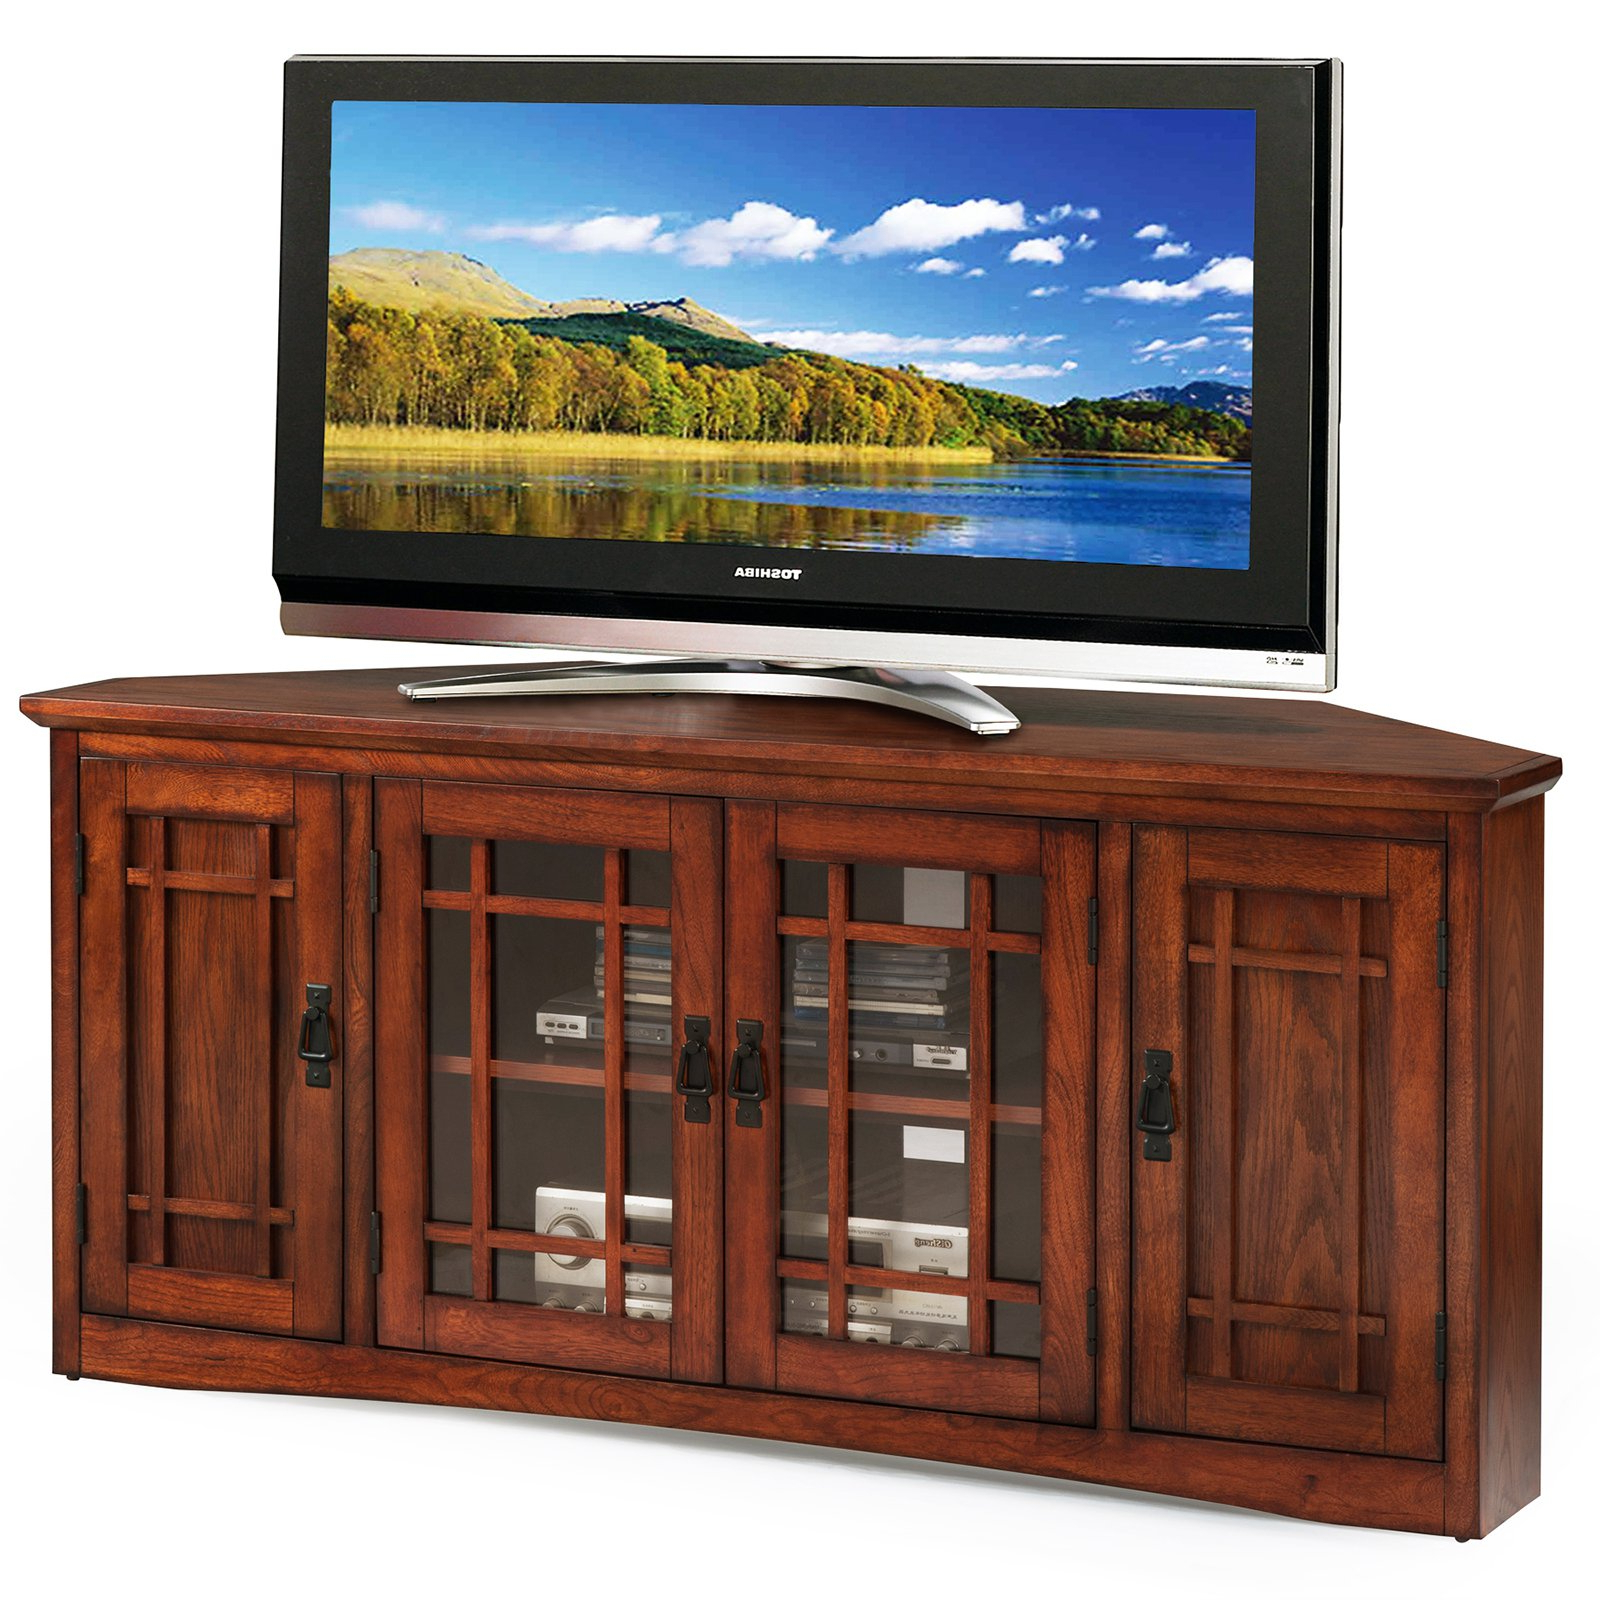 "Leick Home 56"" Corner Tv Stand For Tv's Up To 60"", Mission Oak Intended For Popular Corner 60 Inch Tv Stands (View 5 of 20)"